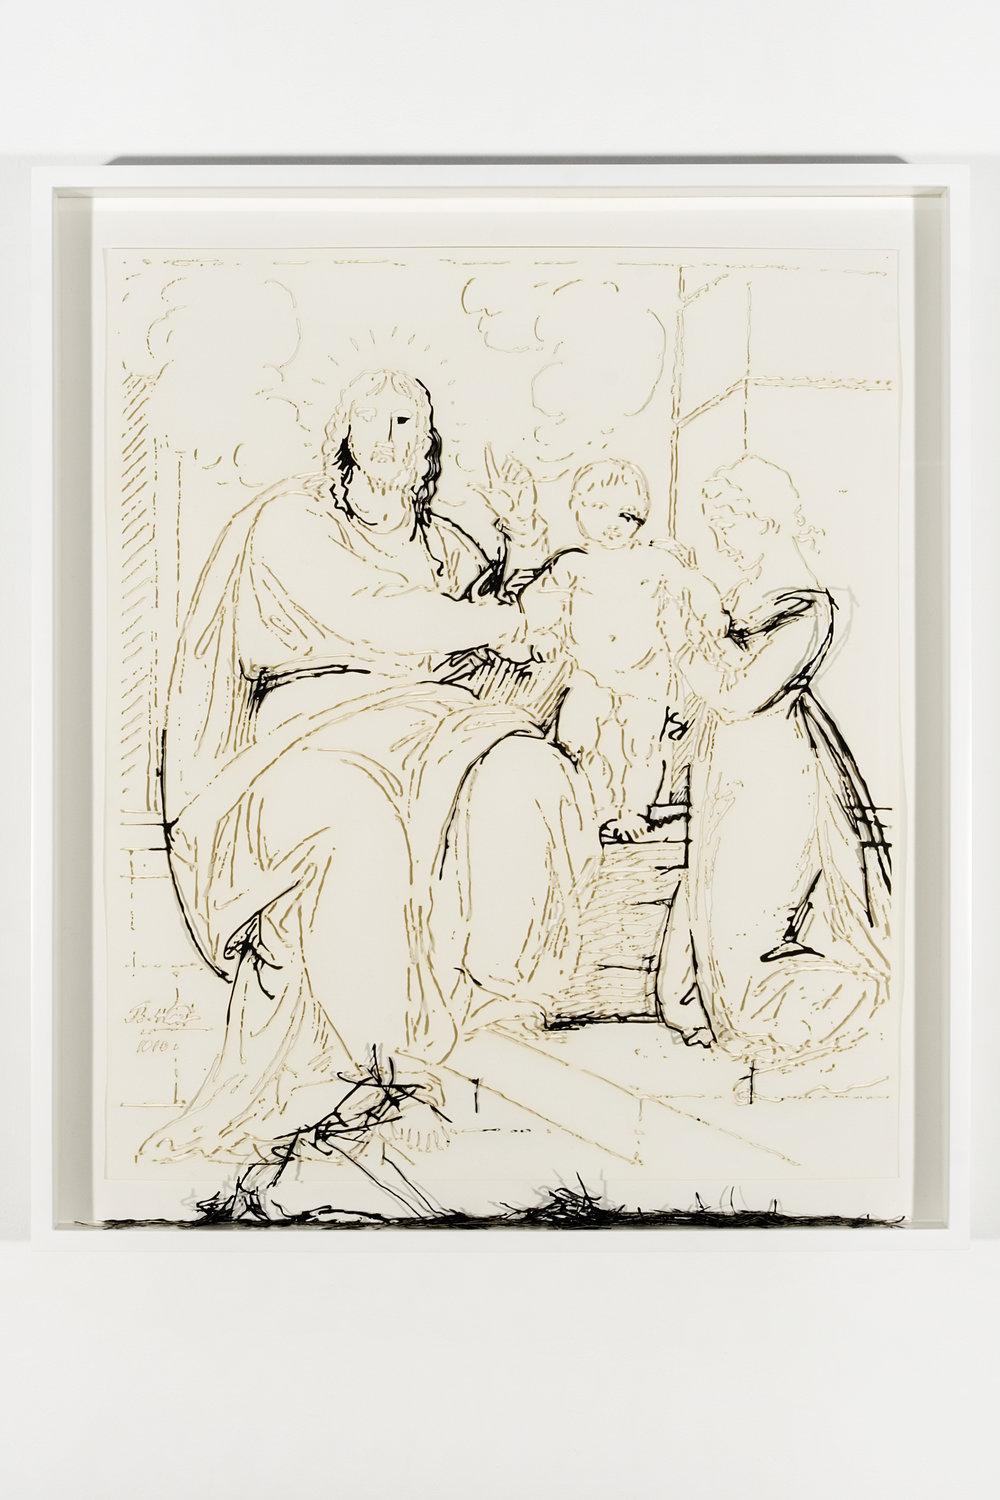 """Collapsed Drawing: """"Christ Showing a Little Child as The Emblem of Heaven"""" (Benjamin West), 2007 laser-cut paper and laser-cut archival digital print mounted on museum board 66 x 56 cm - 26 x 22 inches (framed)"""